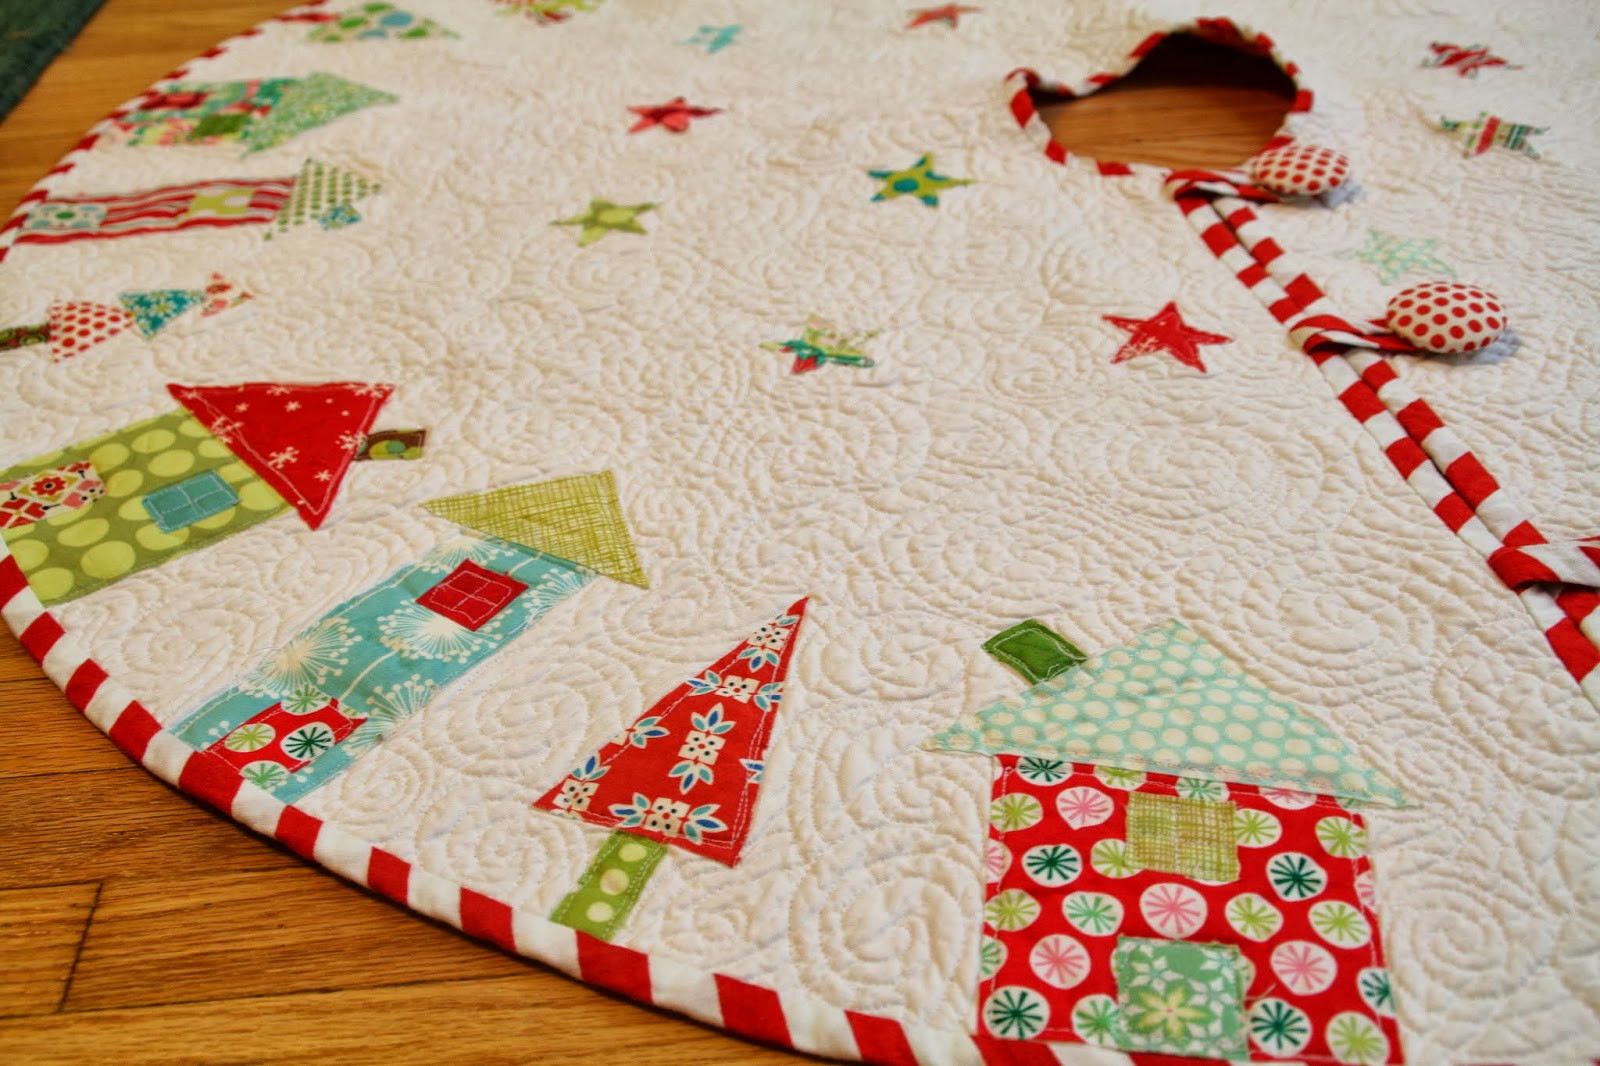 Christmas Tree Skirt Pattern Luxury Quilted Christmas Tree Skirt Tutorials I Want to Try Of Top 49 Images Christmas Tree Skirt Pattern